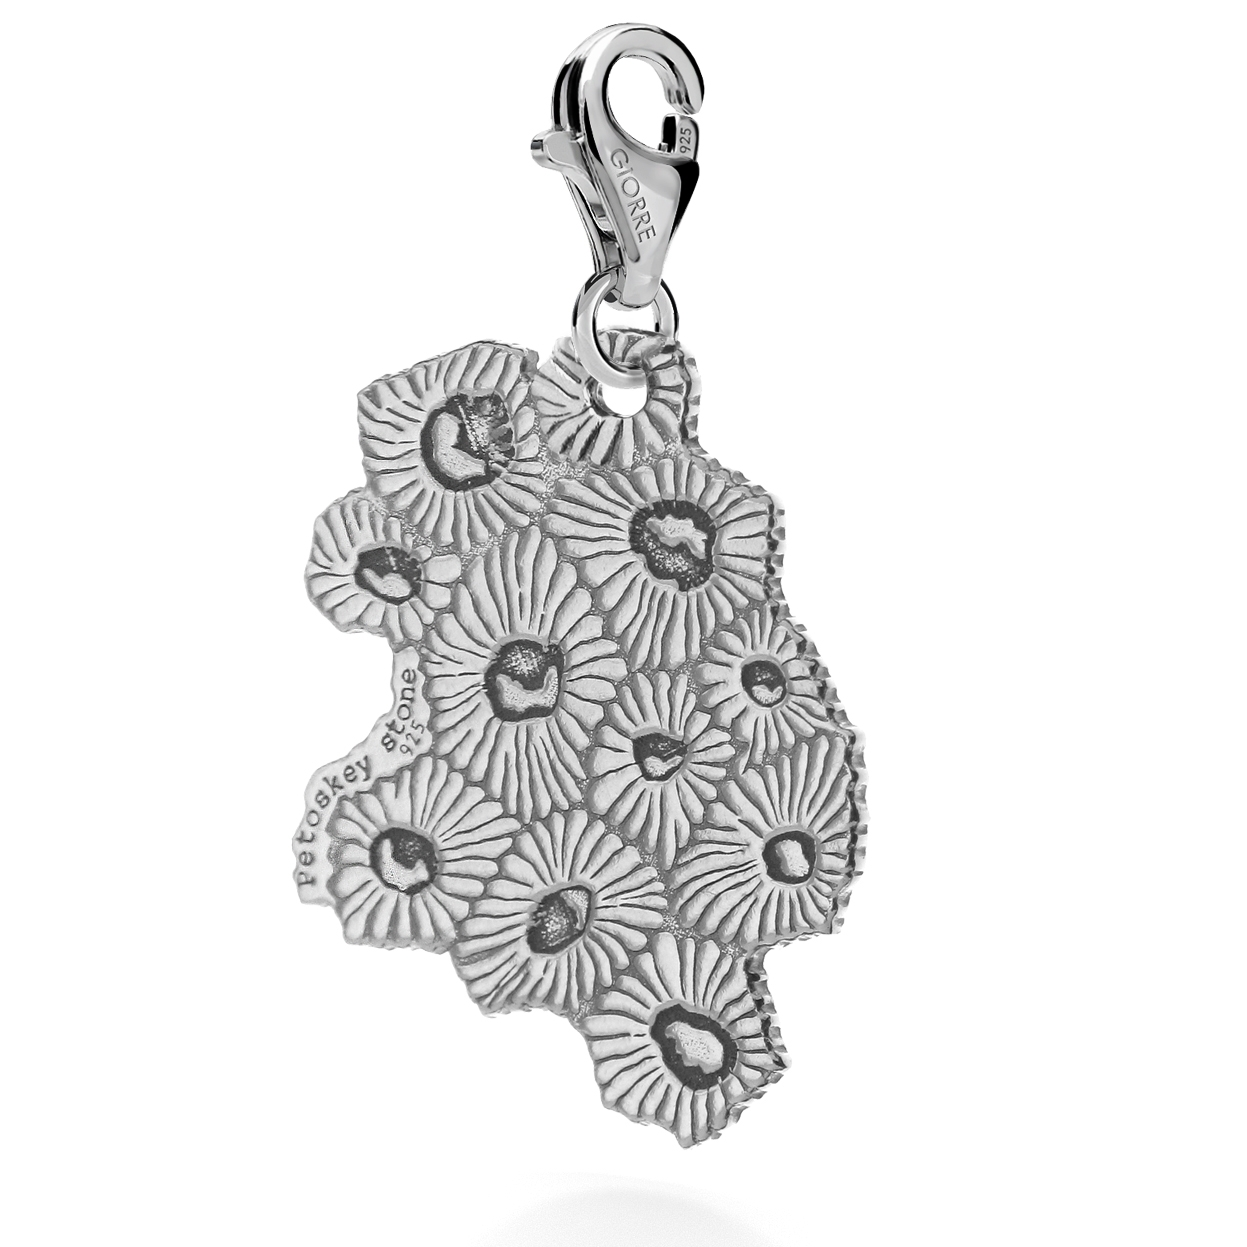 CHARM 8, PETOSKEY STONE, STERLING SILVER RHODIUM OR 24K GOLD PLATED